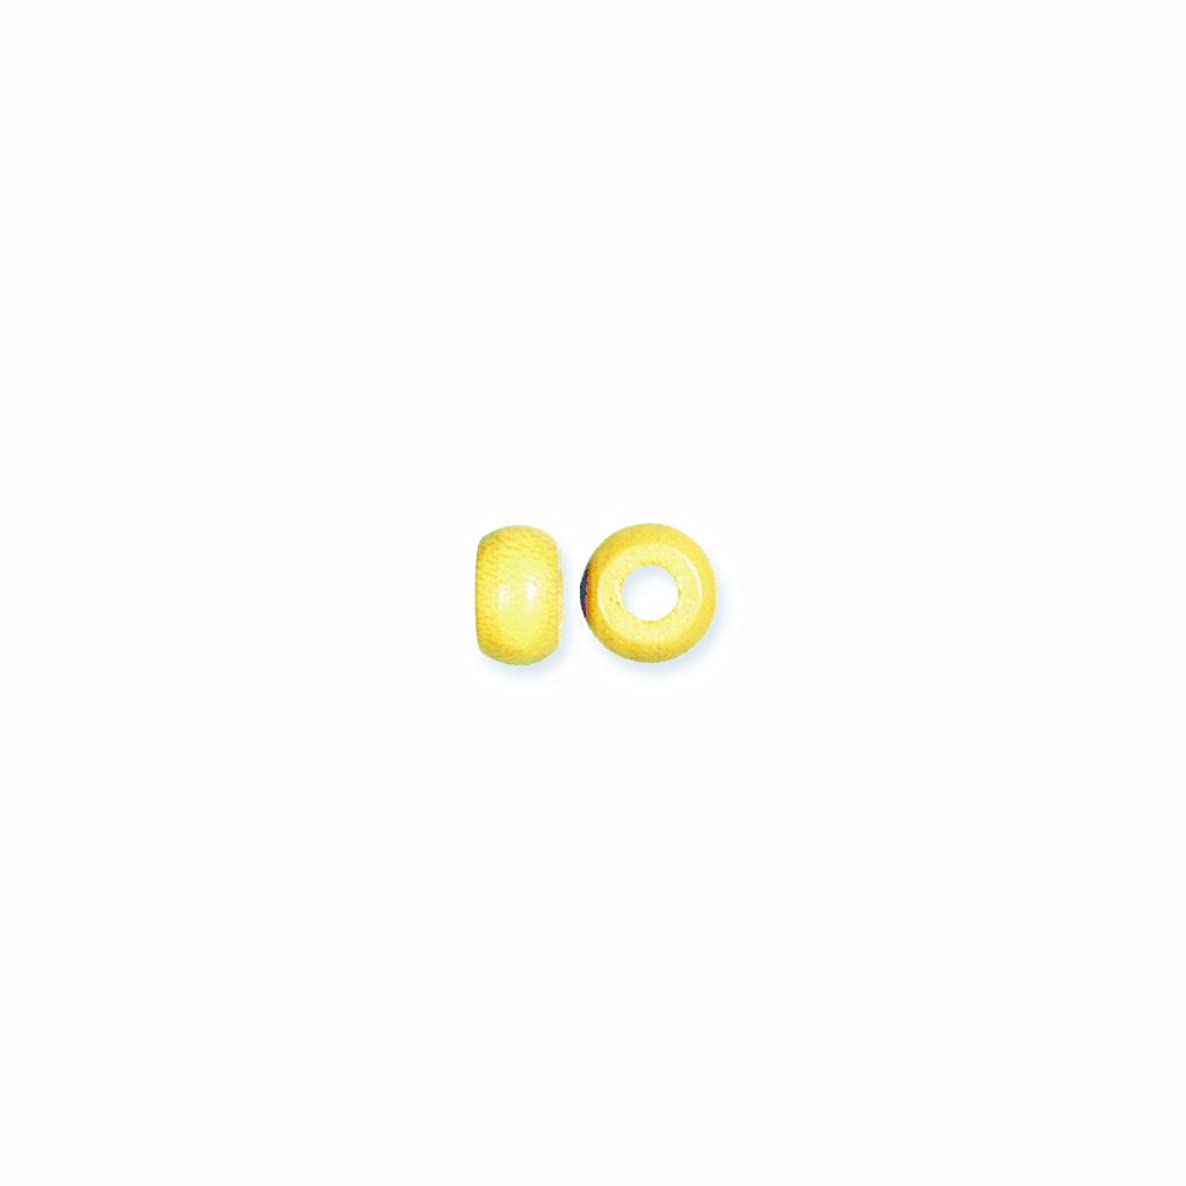 Shipwreck Beads Preciosa Czech Traditional Opaque Wood Crow Beads, 6 by 10mm, Yellow, 200-Pack